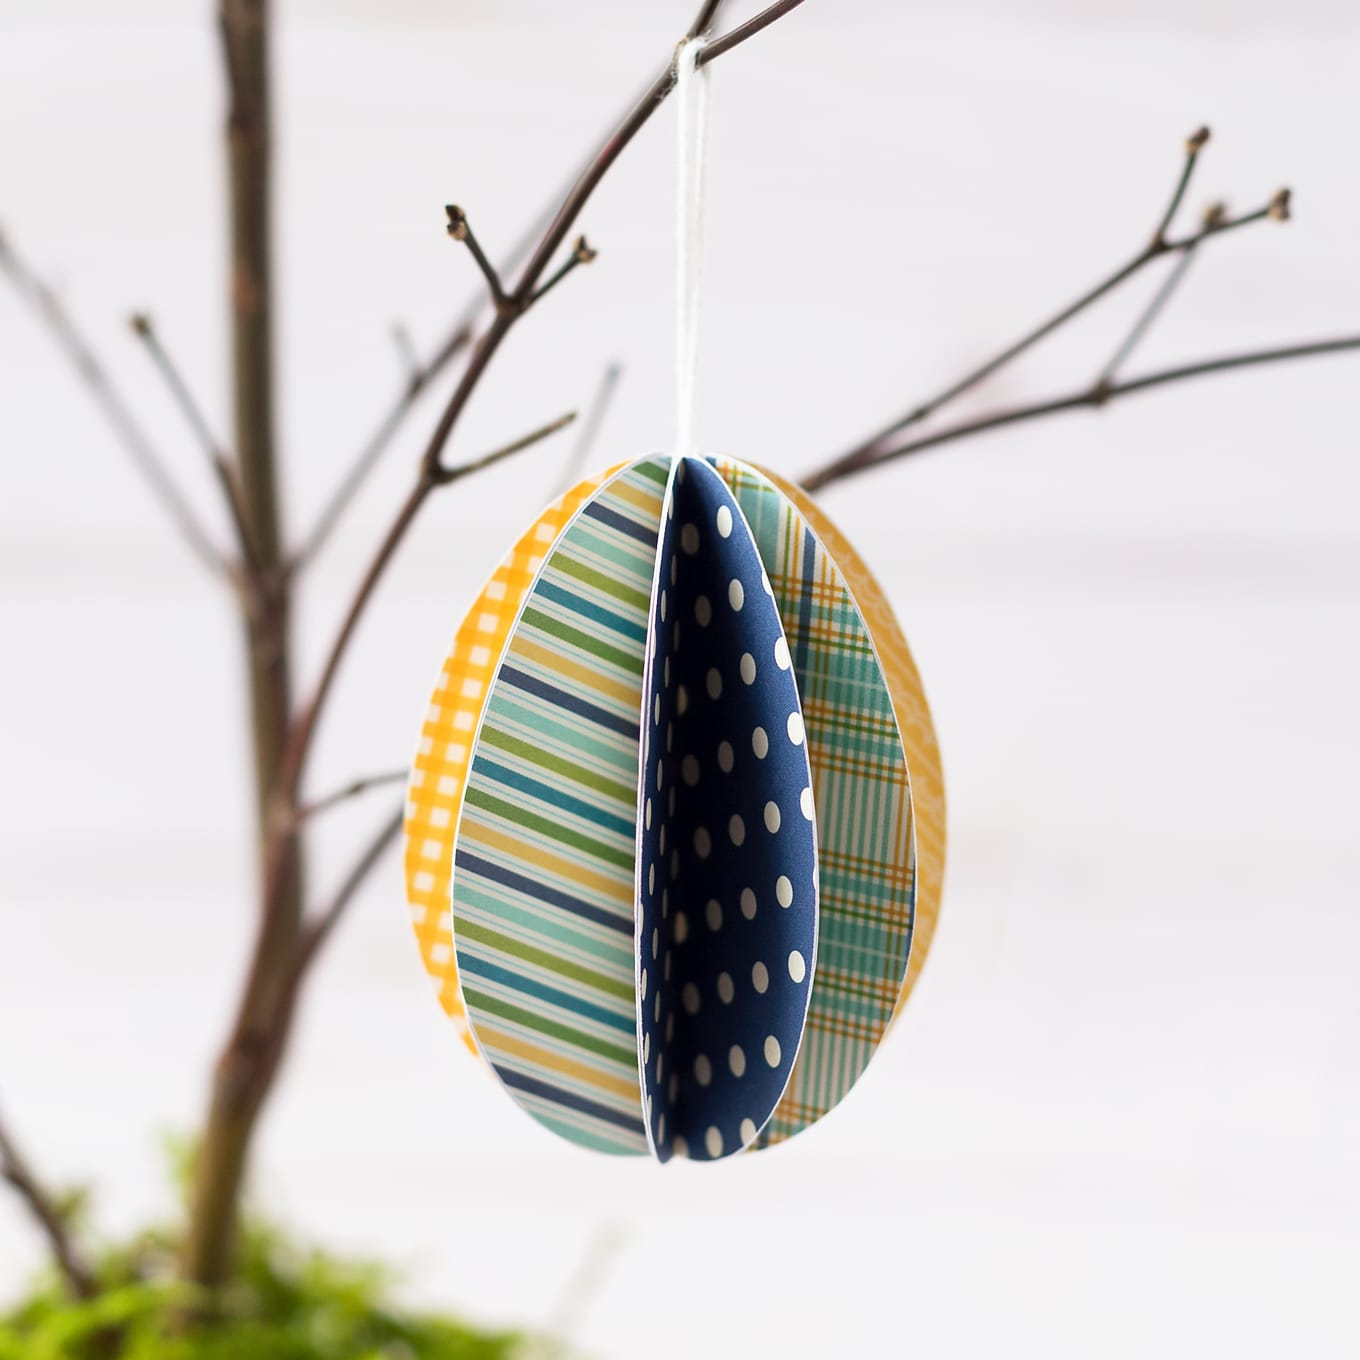 3D Paper Eggs Ornaments